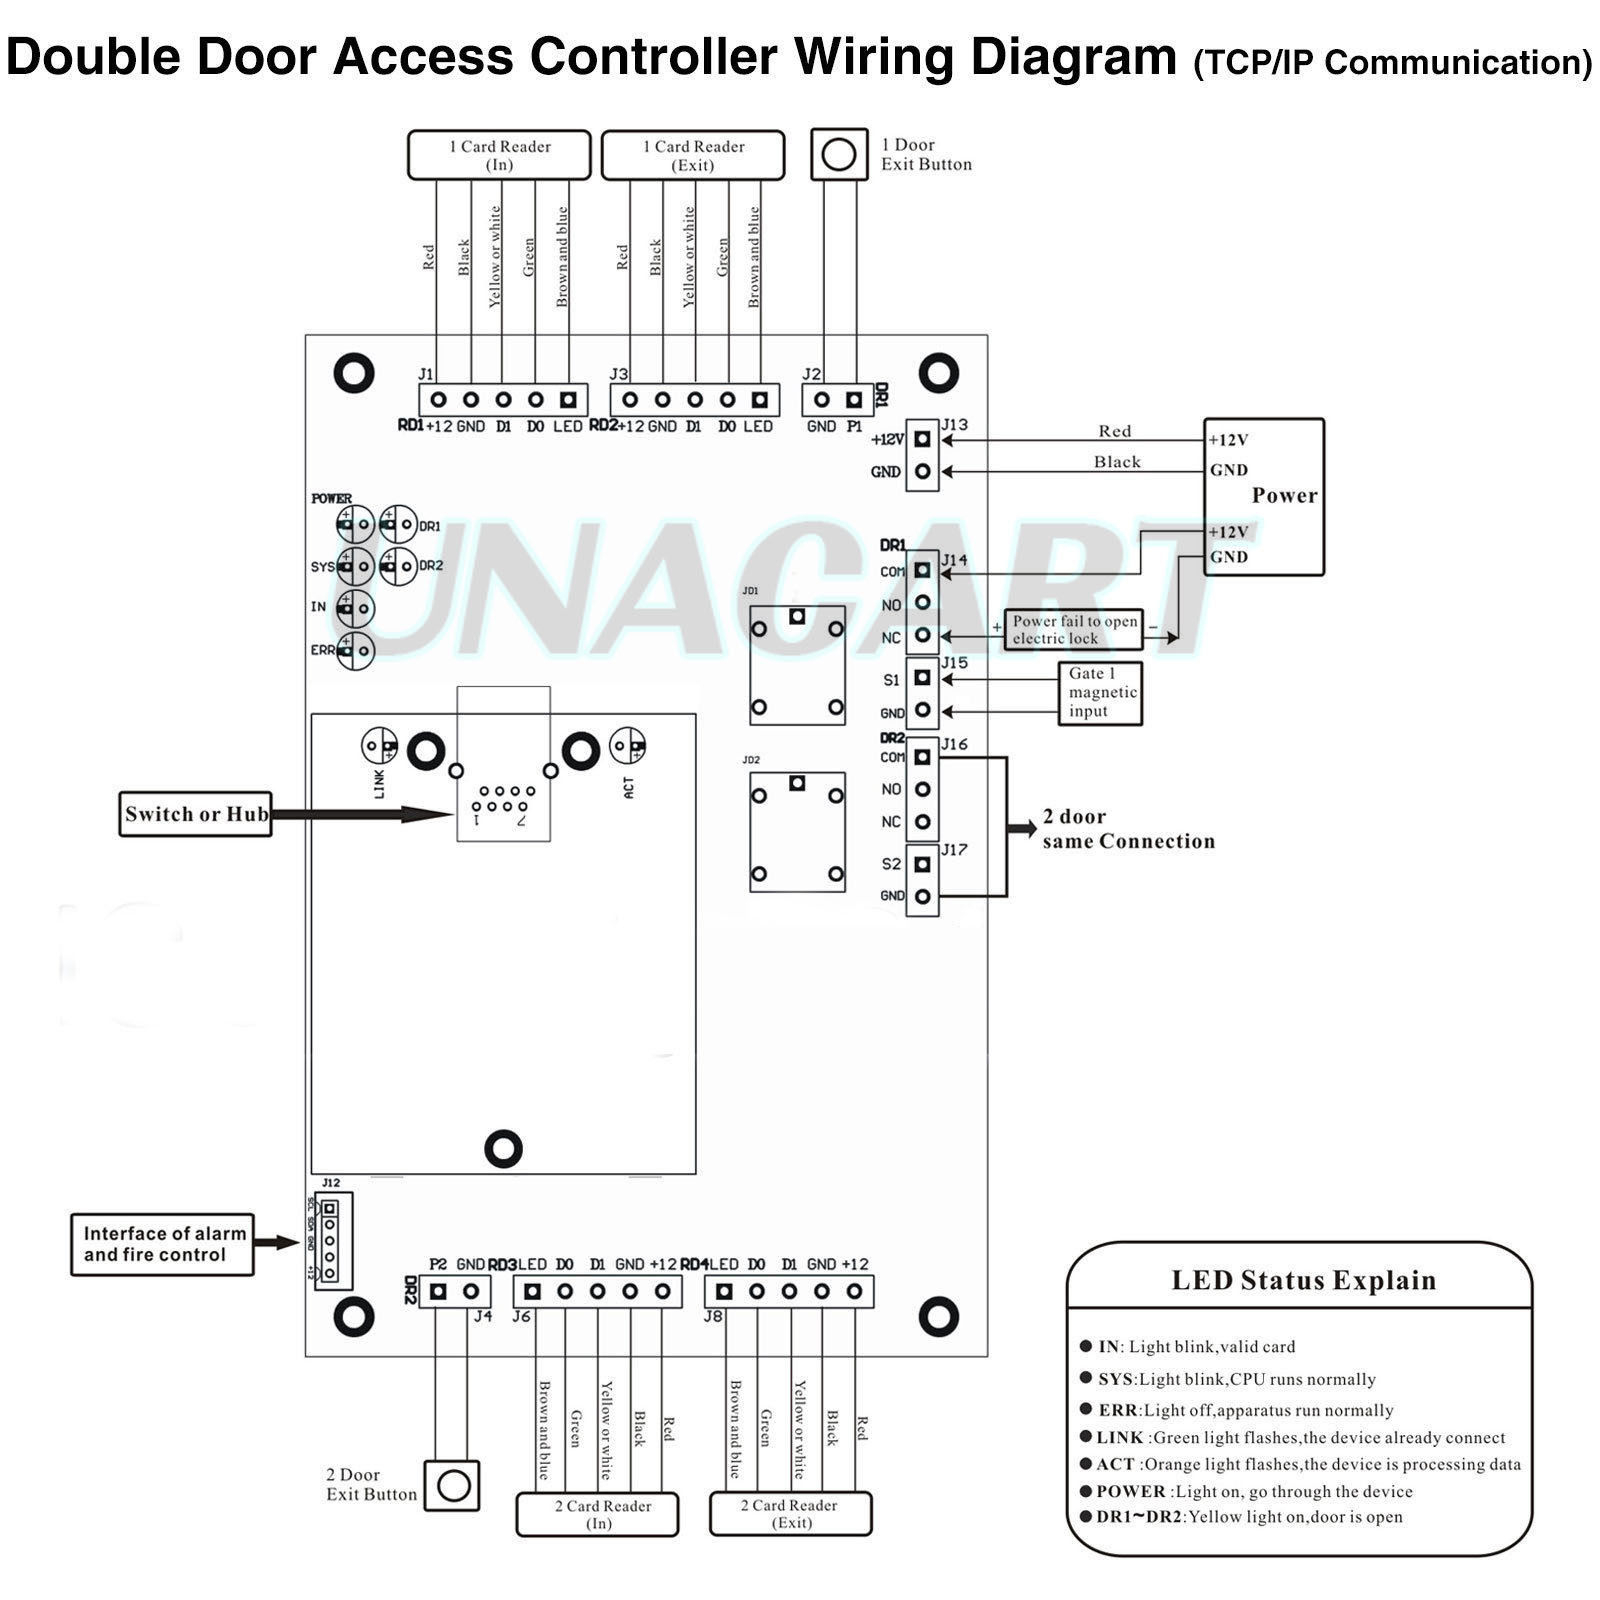 access control card reader wiring diagram Collection-NOB 4 Door Uhppote  Security Network RFID Access